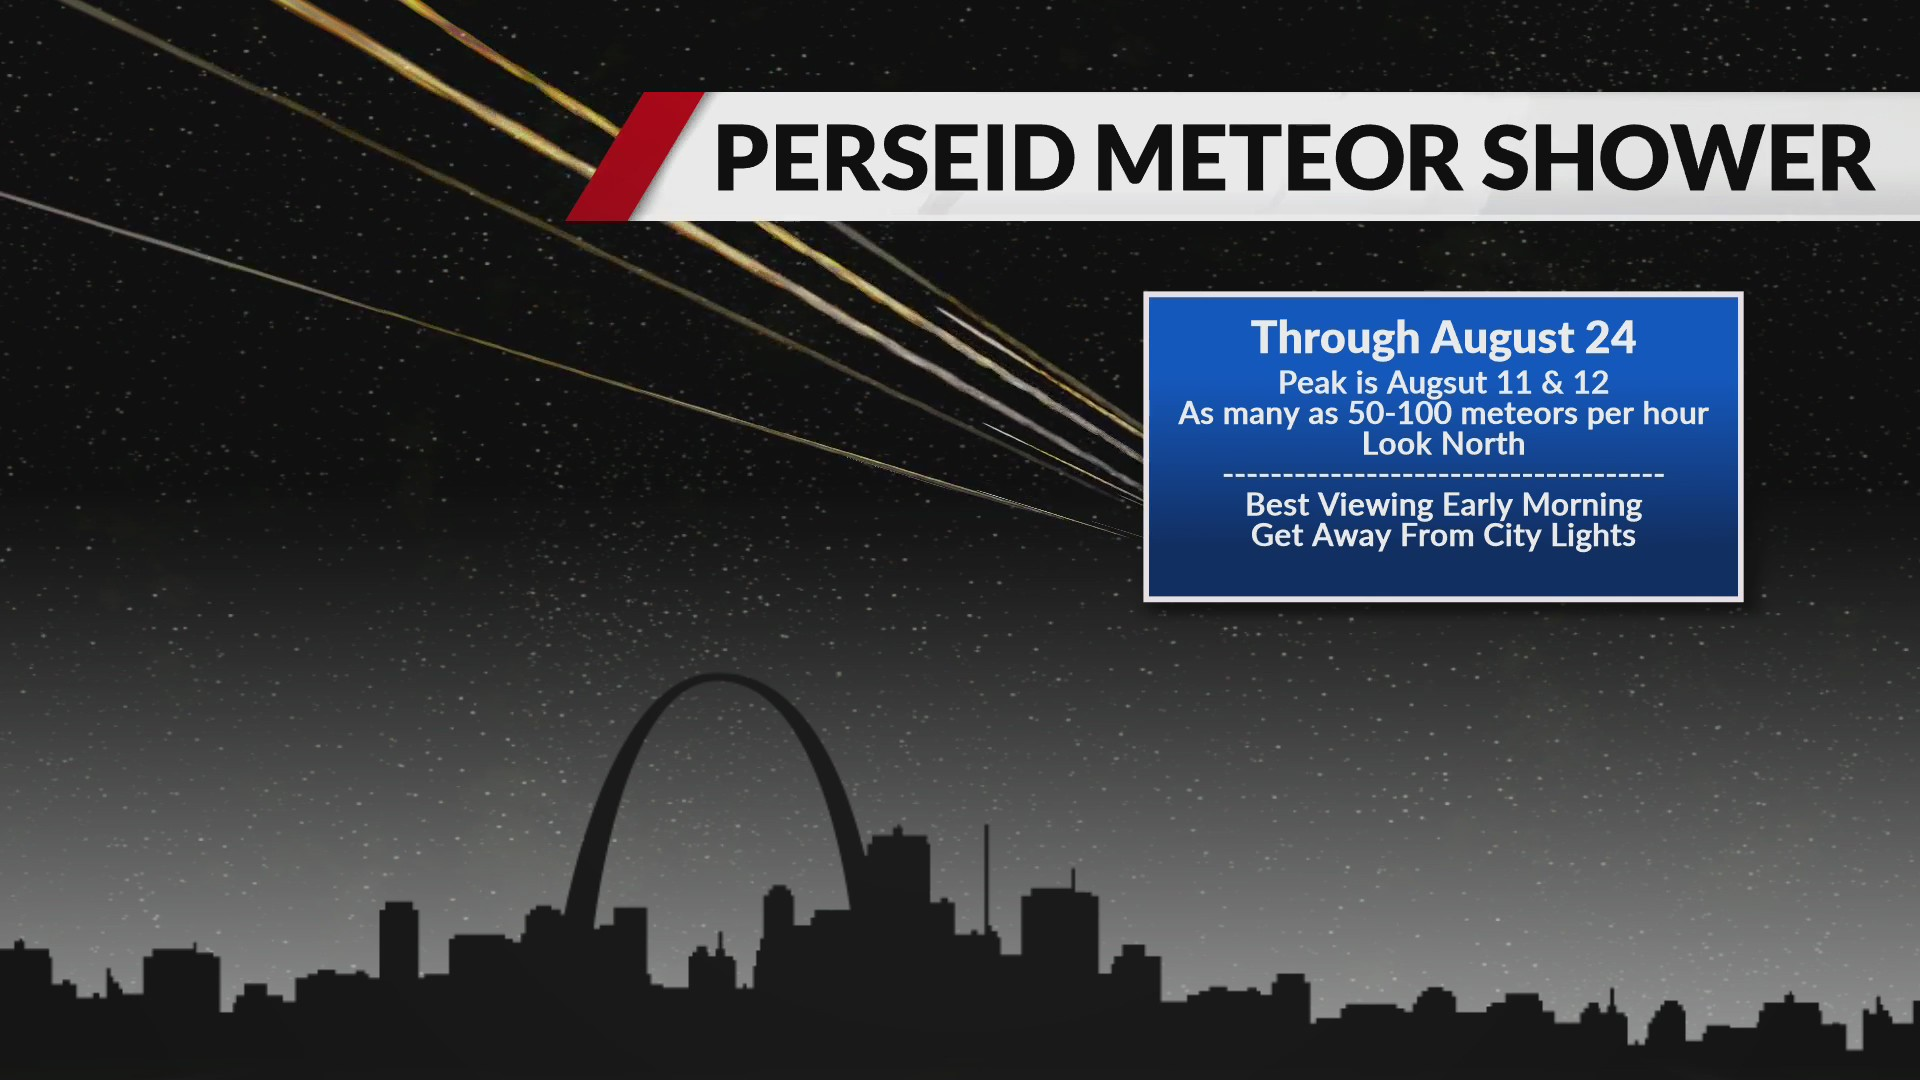 Perseid meteor shower promises big show for stargazers